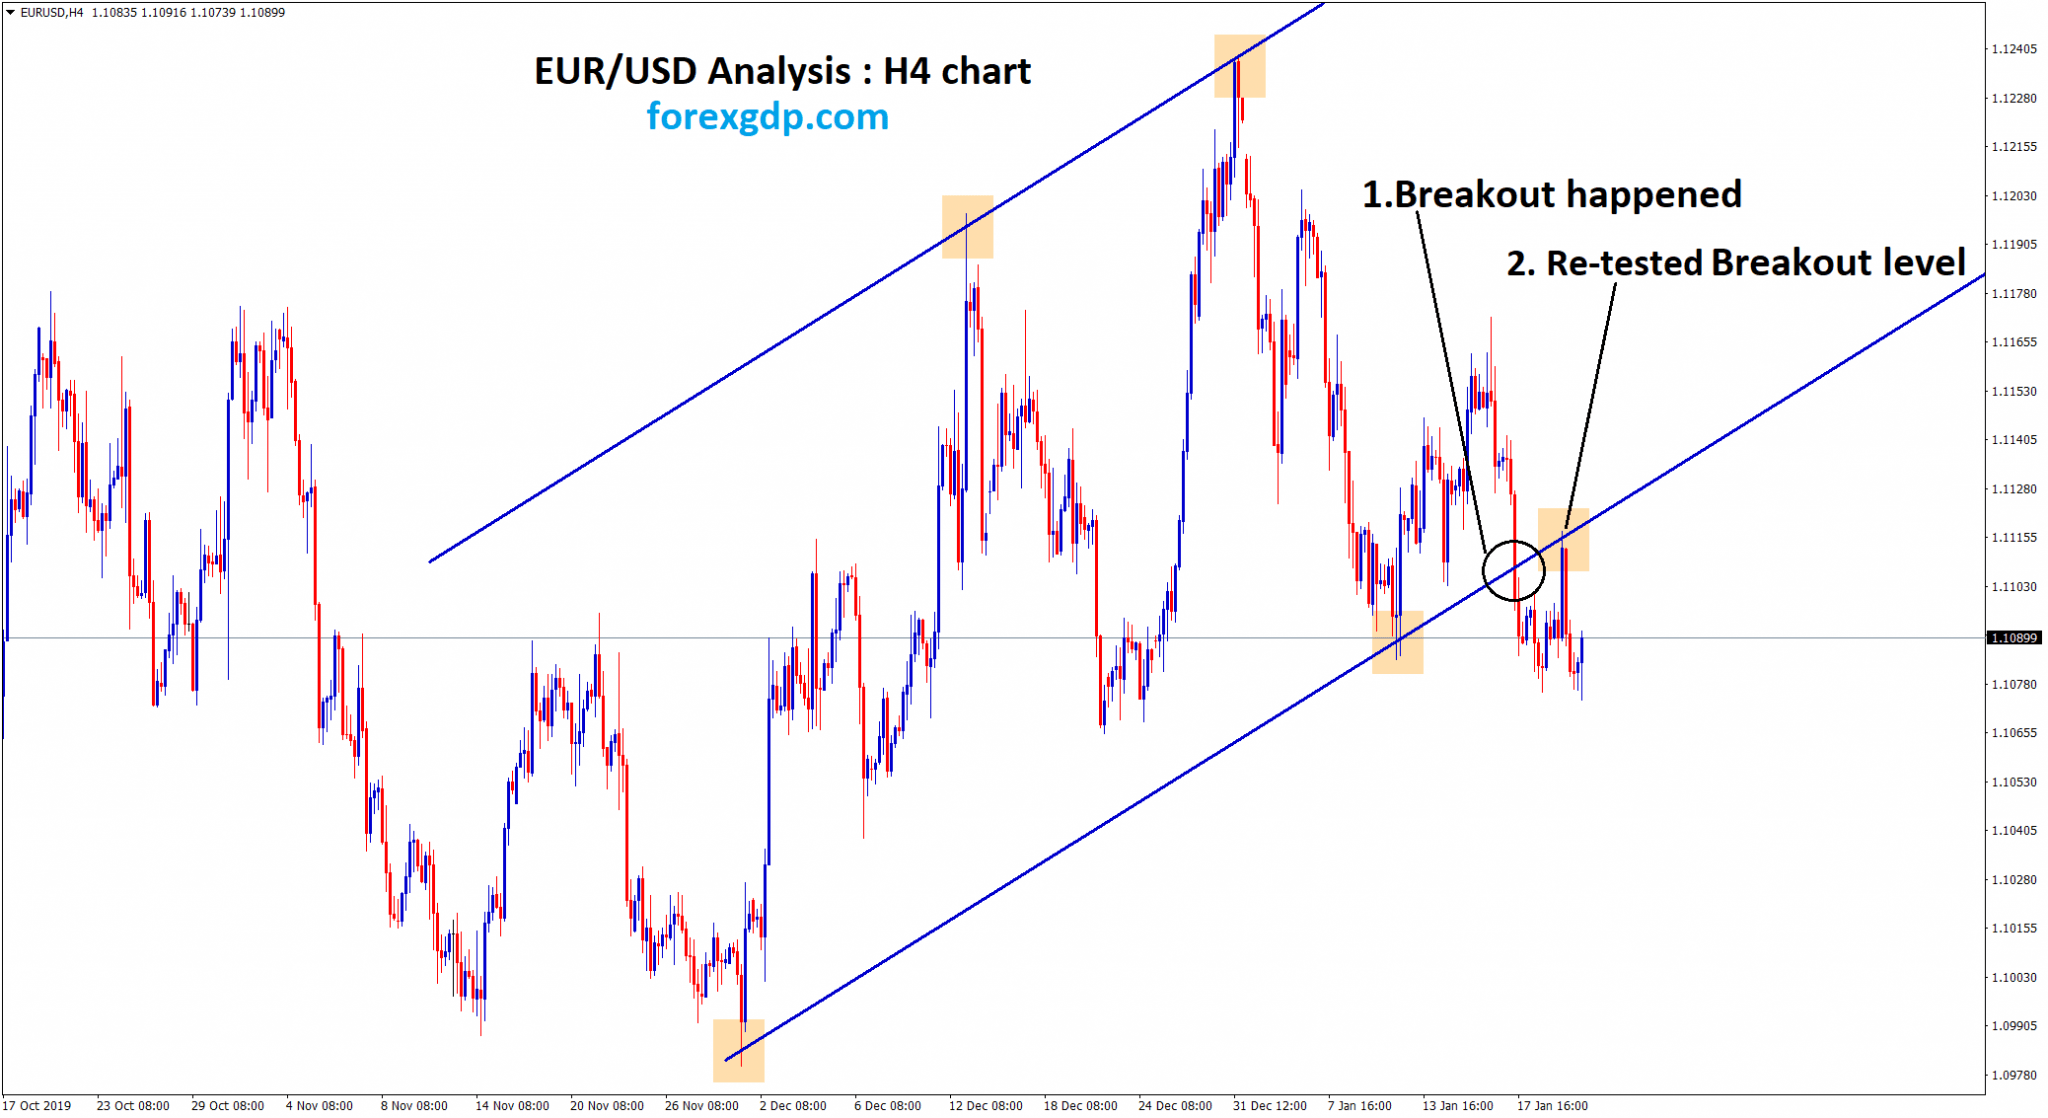 eur usd re tested the breakout level in H4 chart